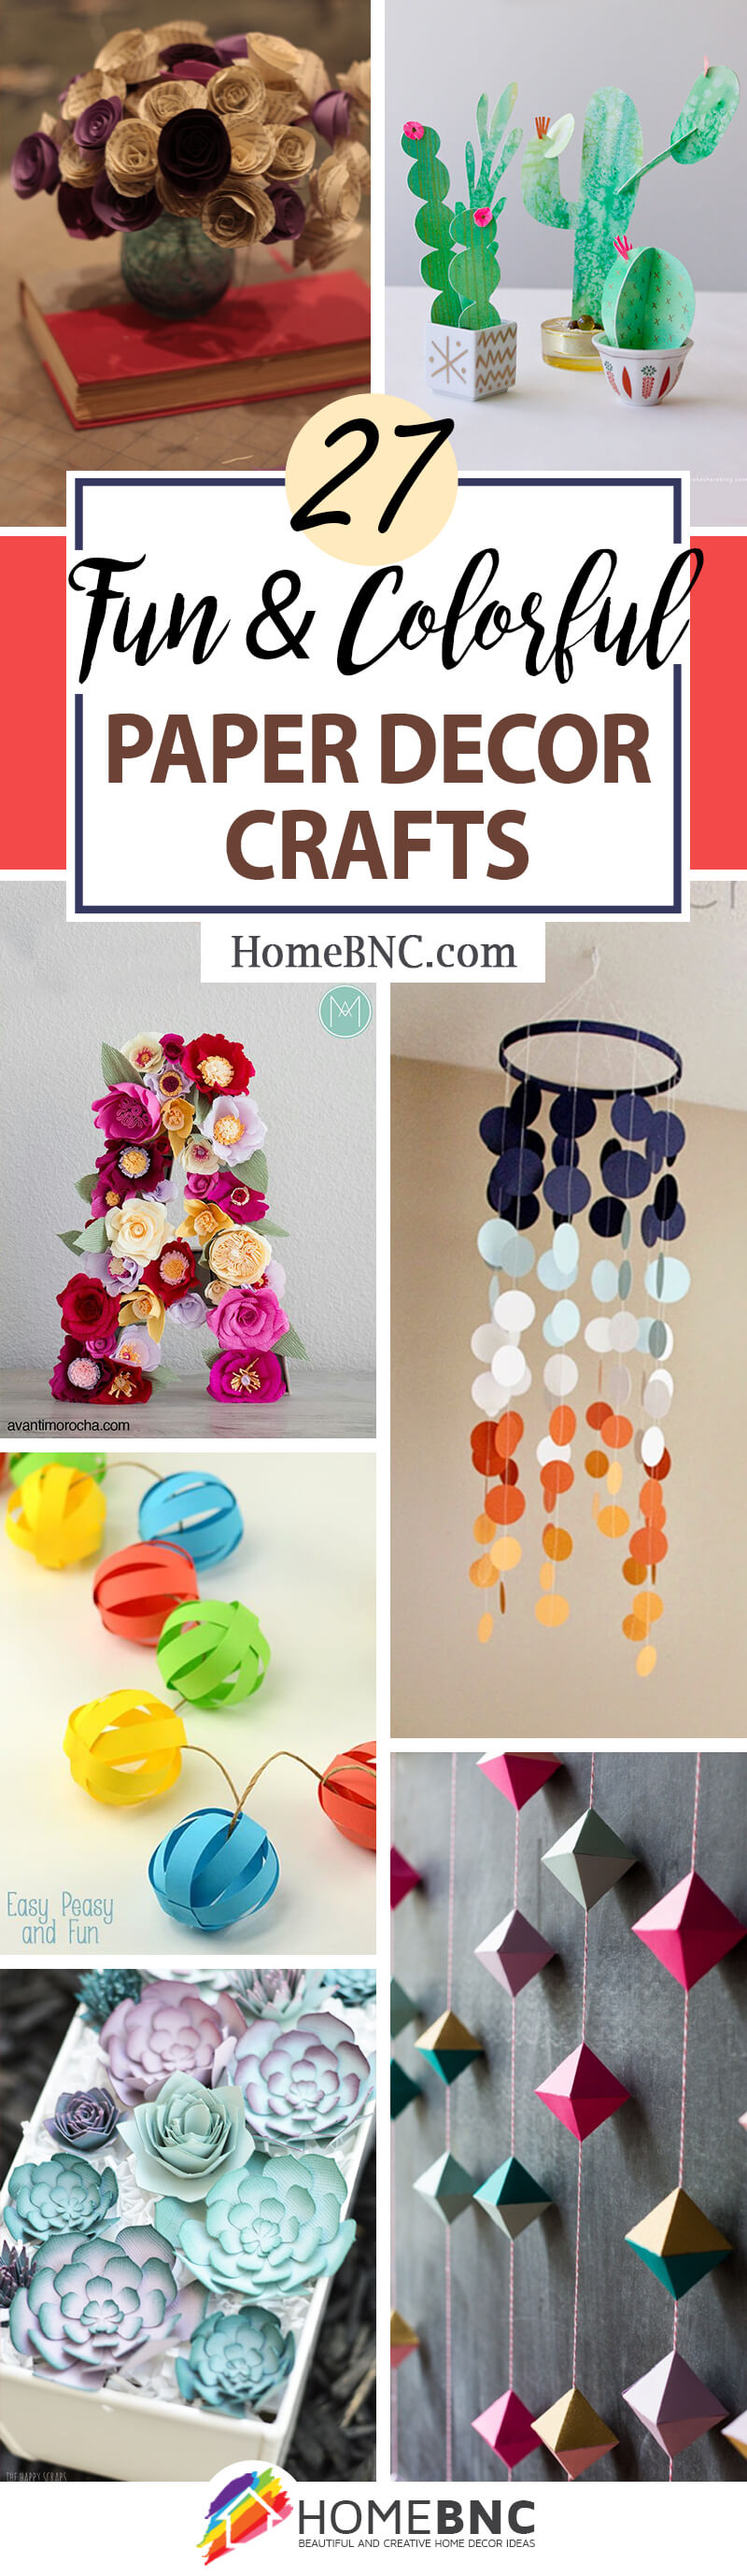 27 Best Paper Decor Crafts Ideas And Designs For 2021